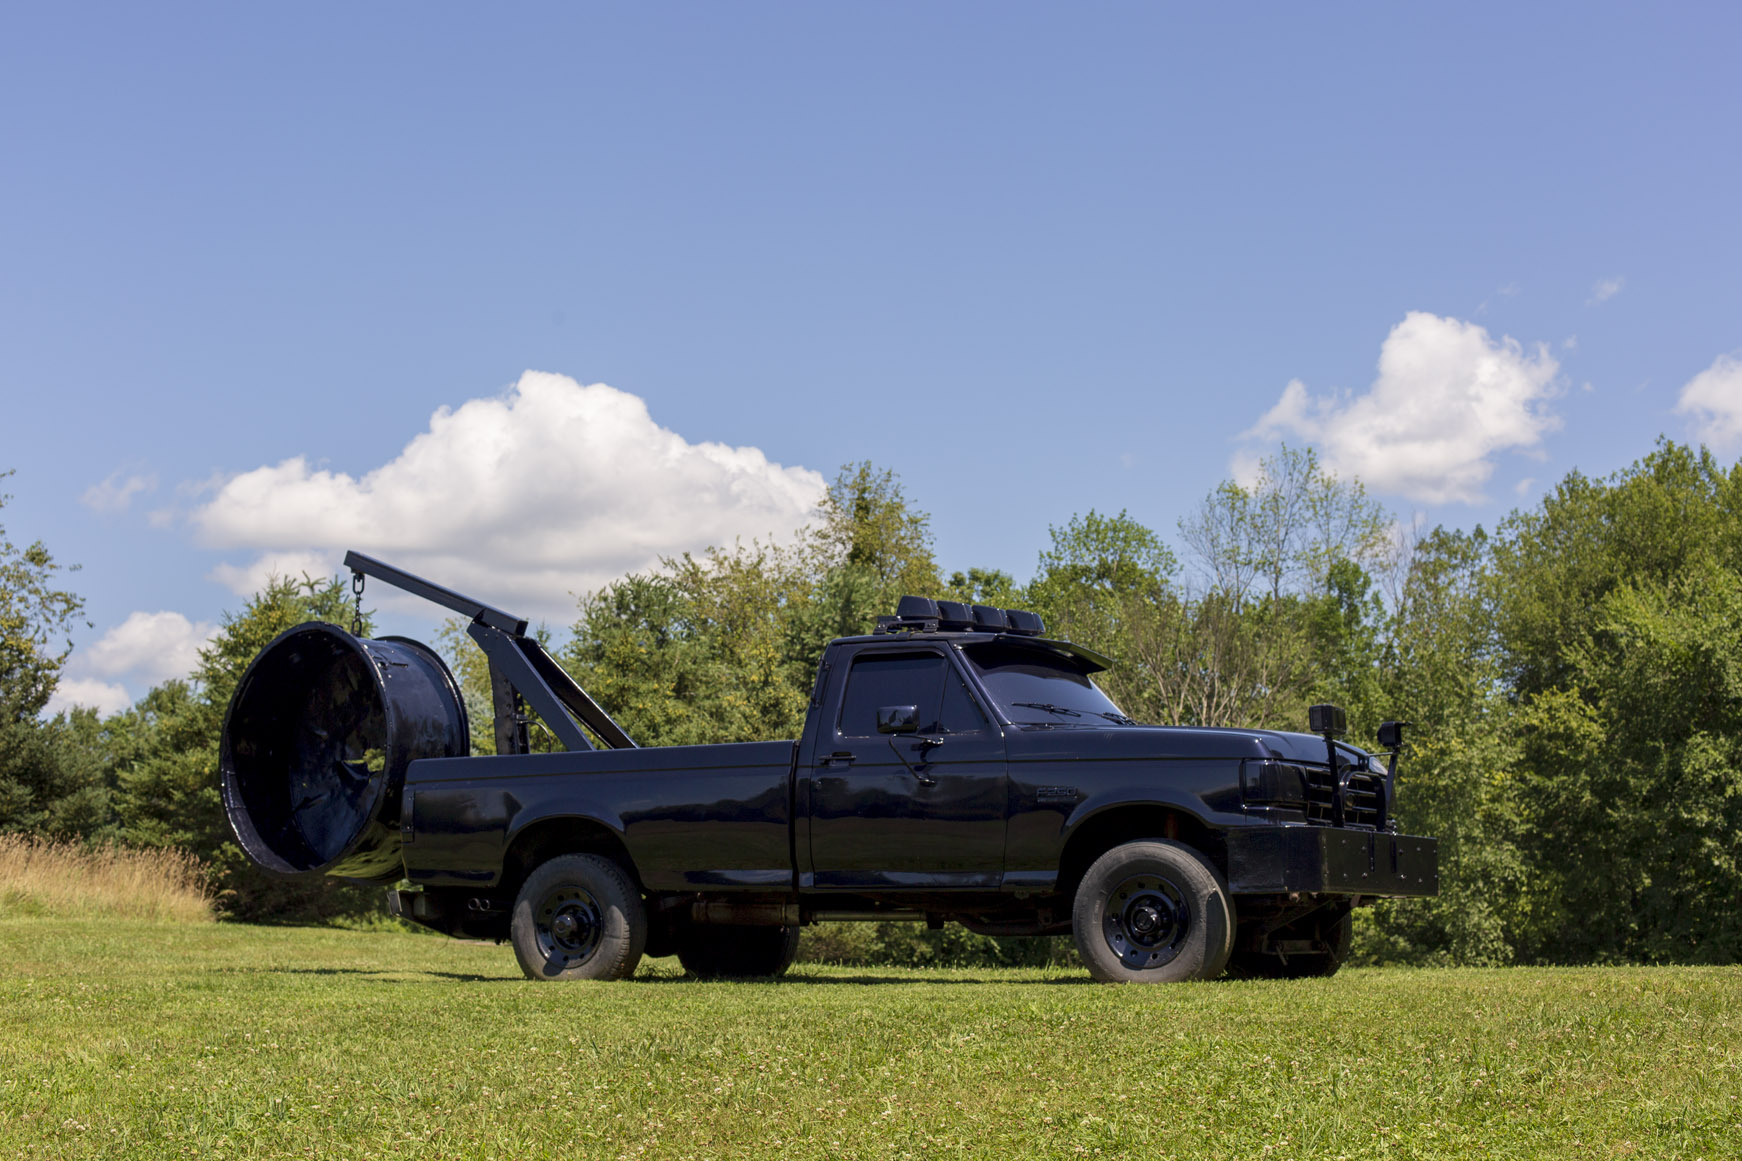 shiny black truck sculpture by virginia overton at the ranch montauk